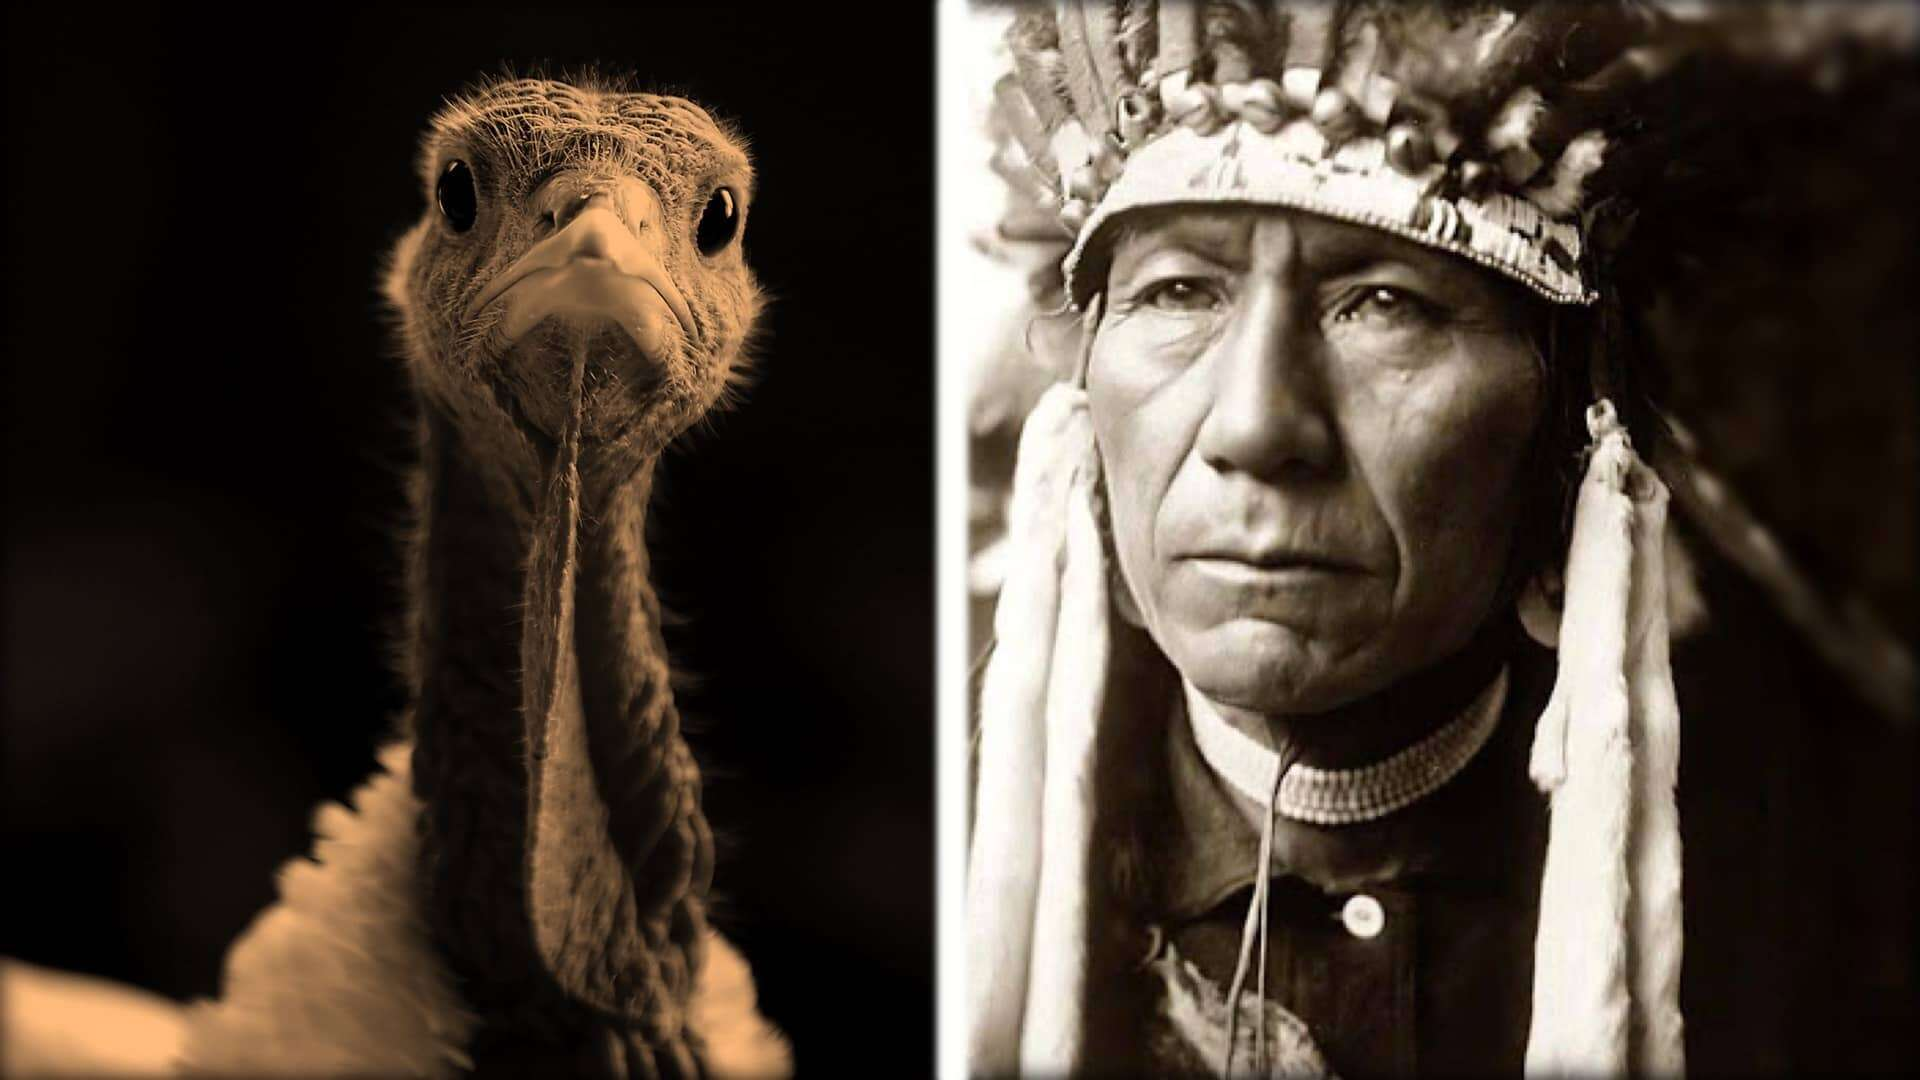 The image is split in two. On the left is a close-up of a turkey from the neck up. On the right is a photograph of a member of the first nation with full headdress.